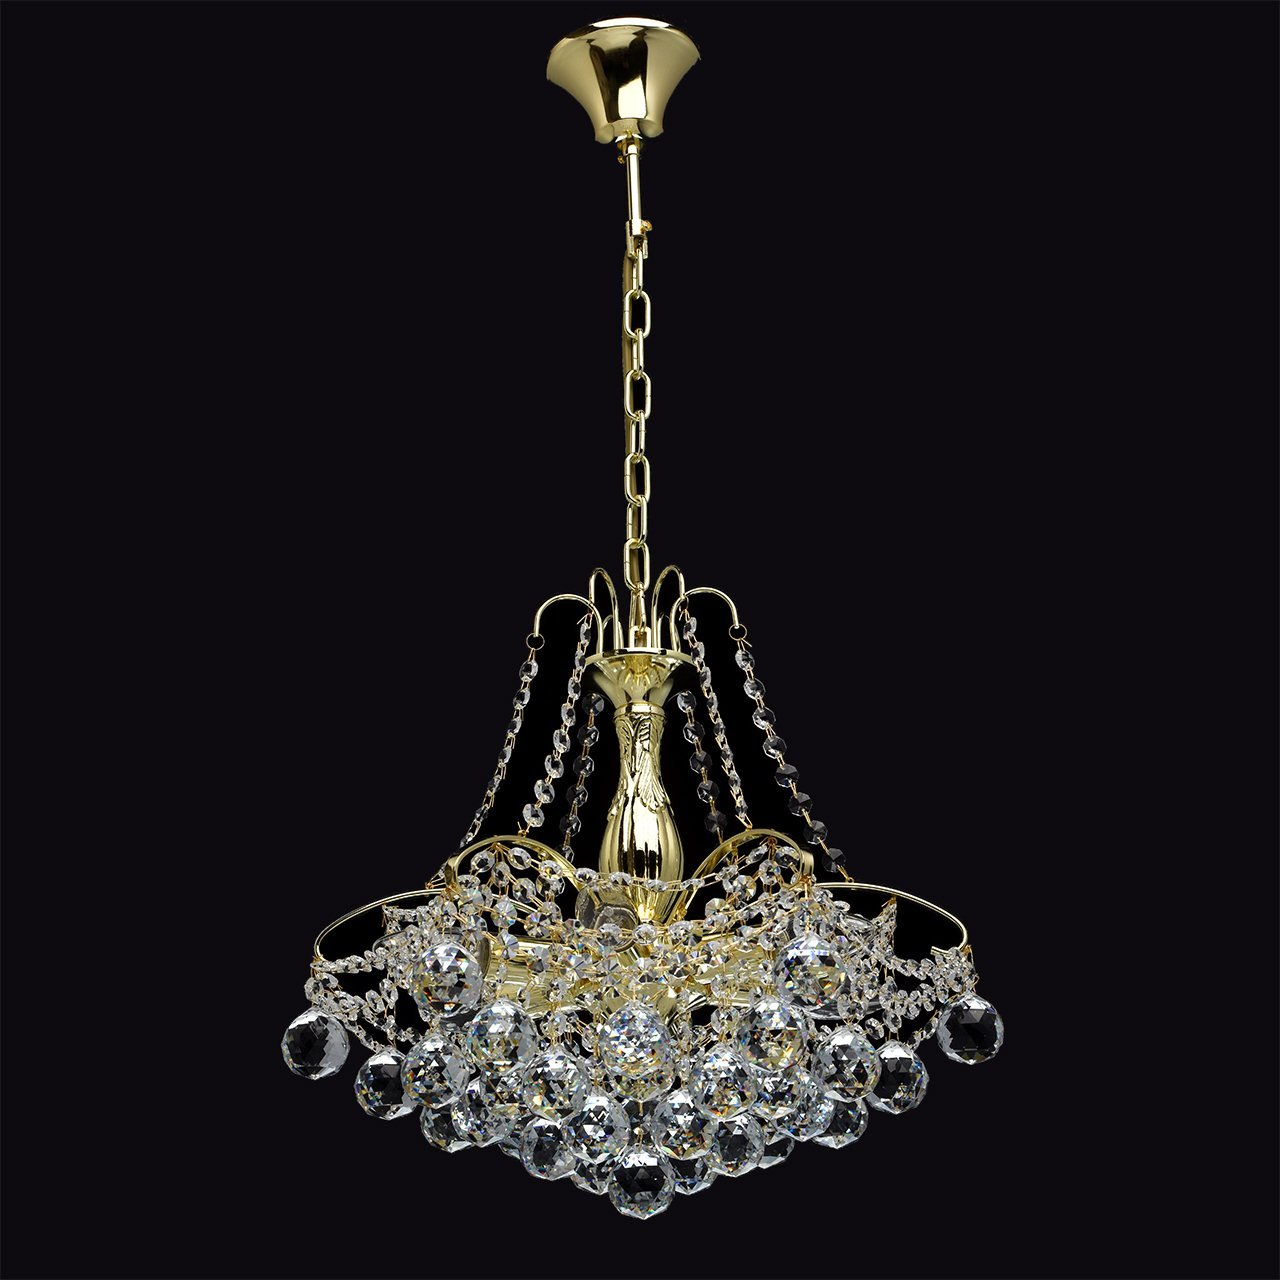 Milo 6 Light Chandelier In Gold